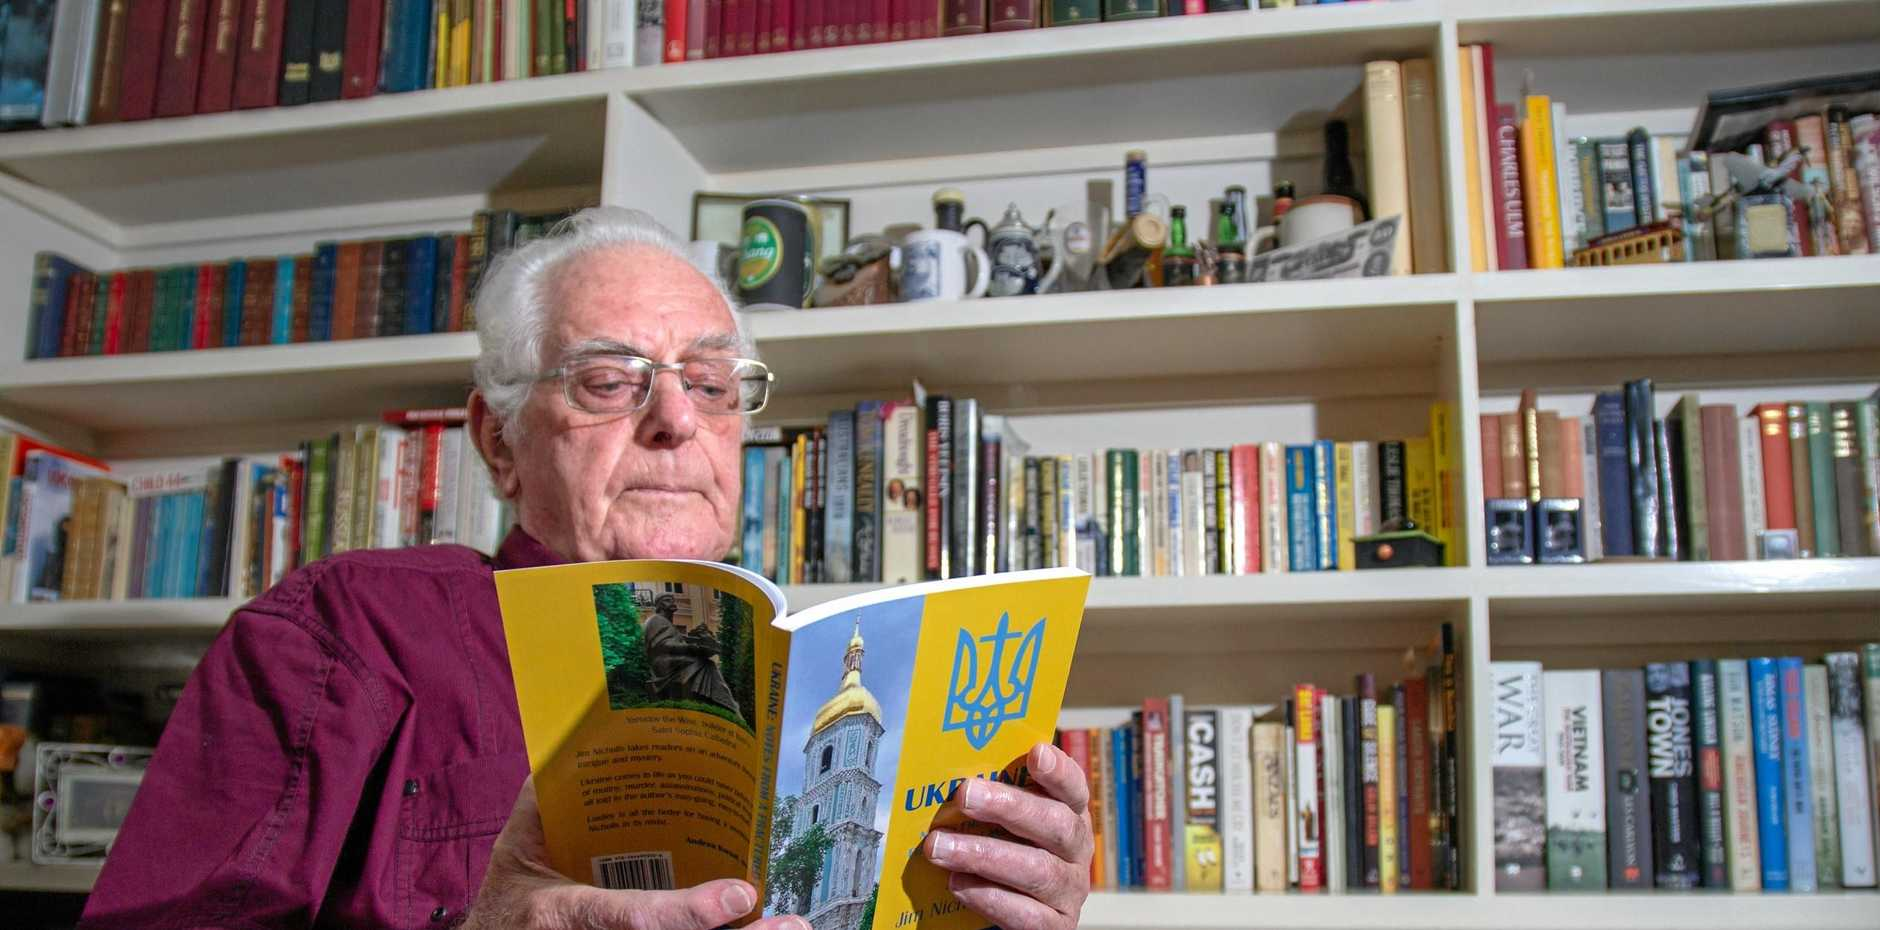 WHAT A TALE: Laidley author Jim Nicholls journeyed to Ukraine earlier this year and chronicled his travels in his new book, launching later this month.